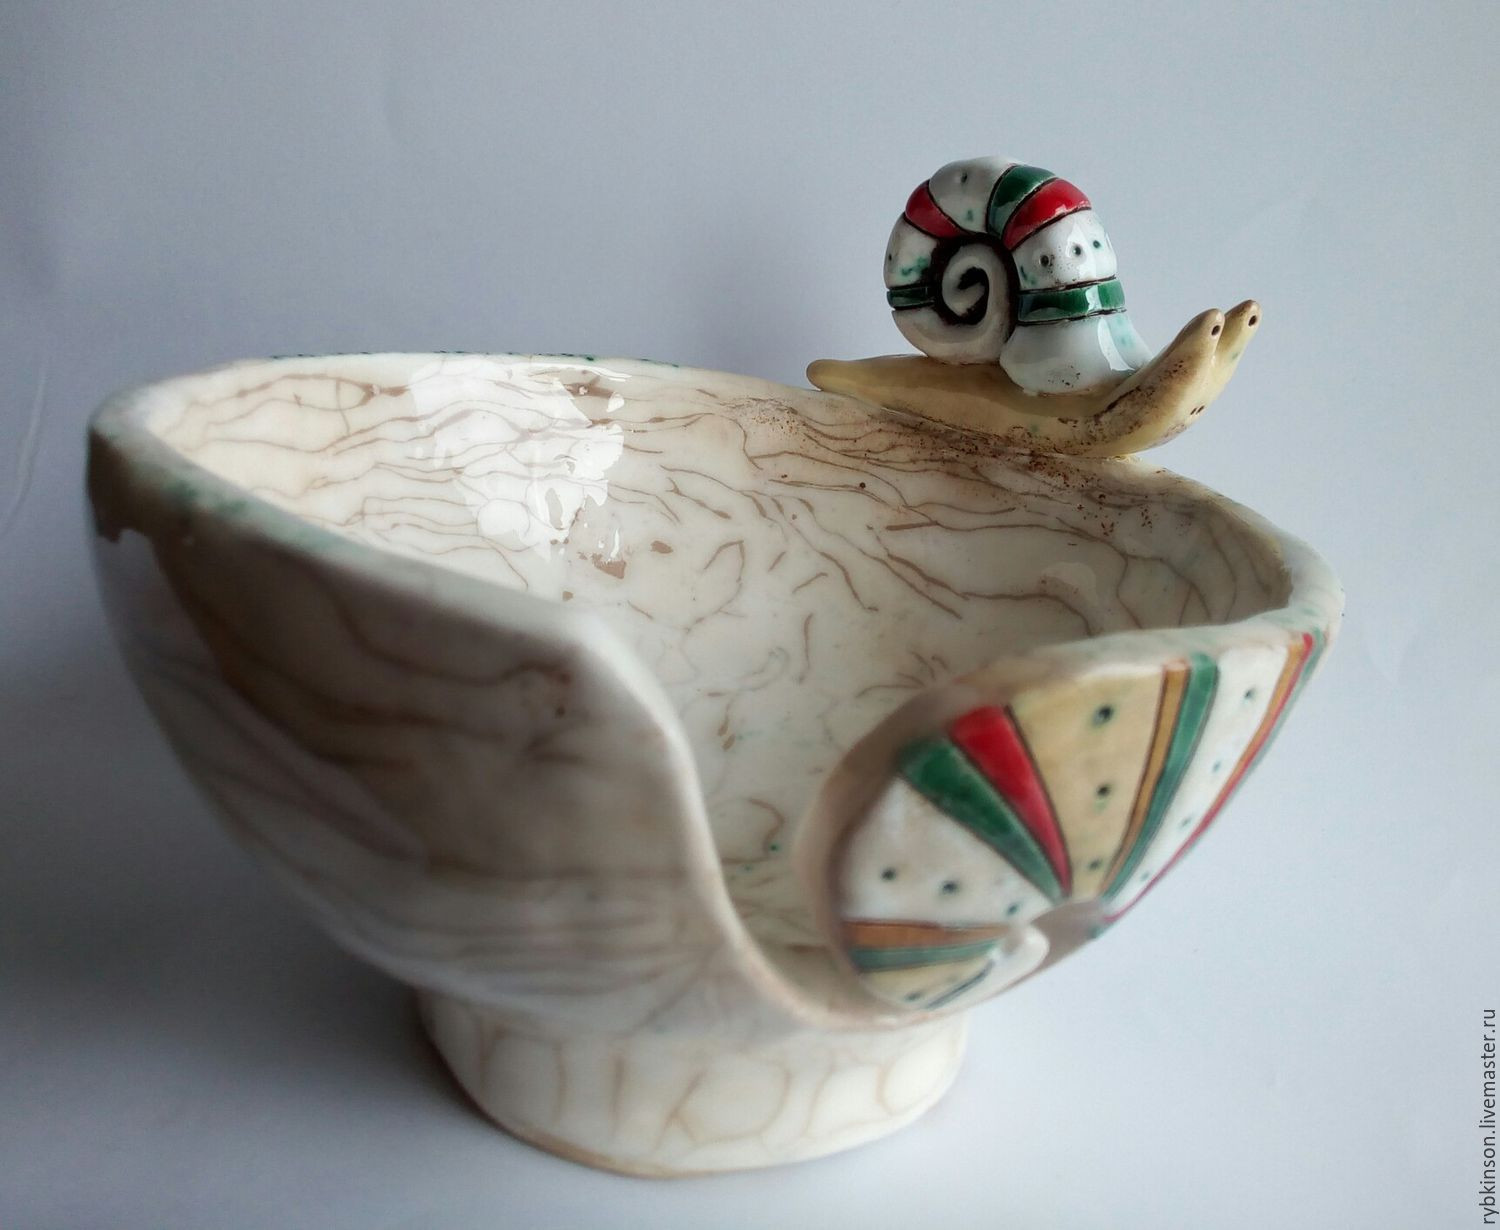 ceramic vases handmade of bowl for knitting a snail shop online on livemaster with shipping with regard to vases handmade livemaster handmade buy bowl for knitting a snail